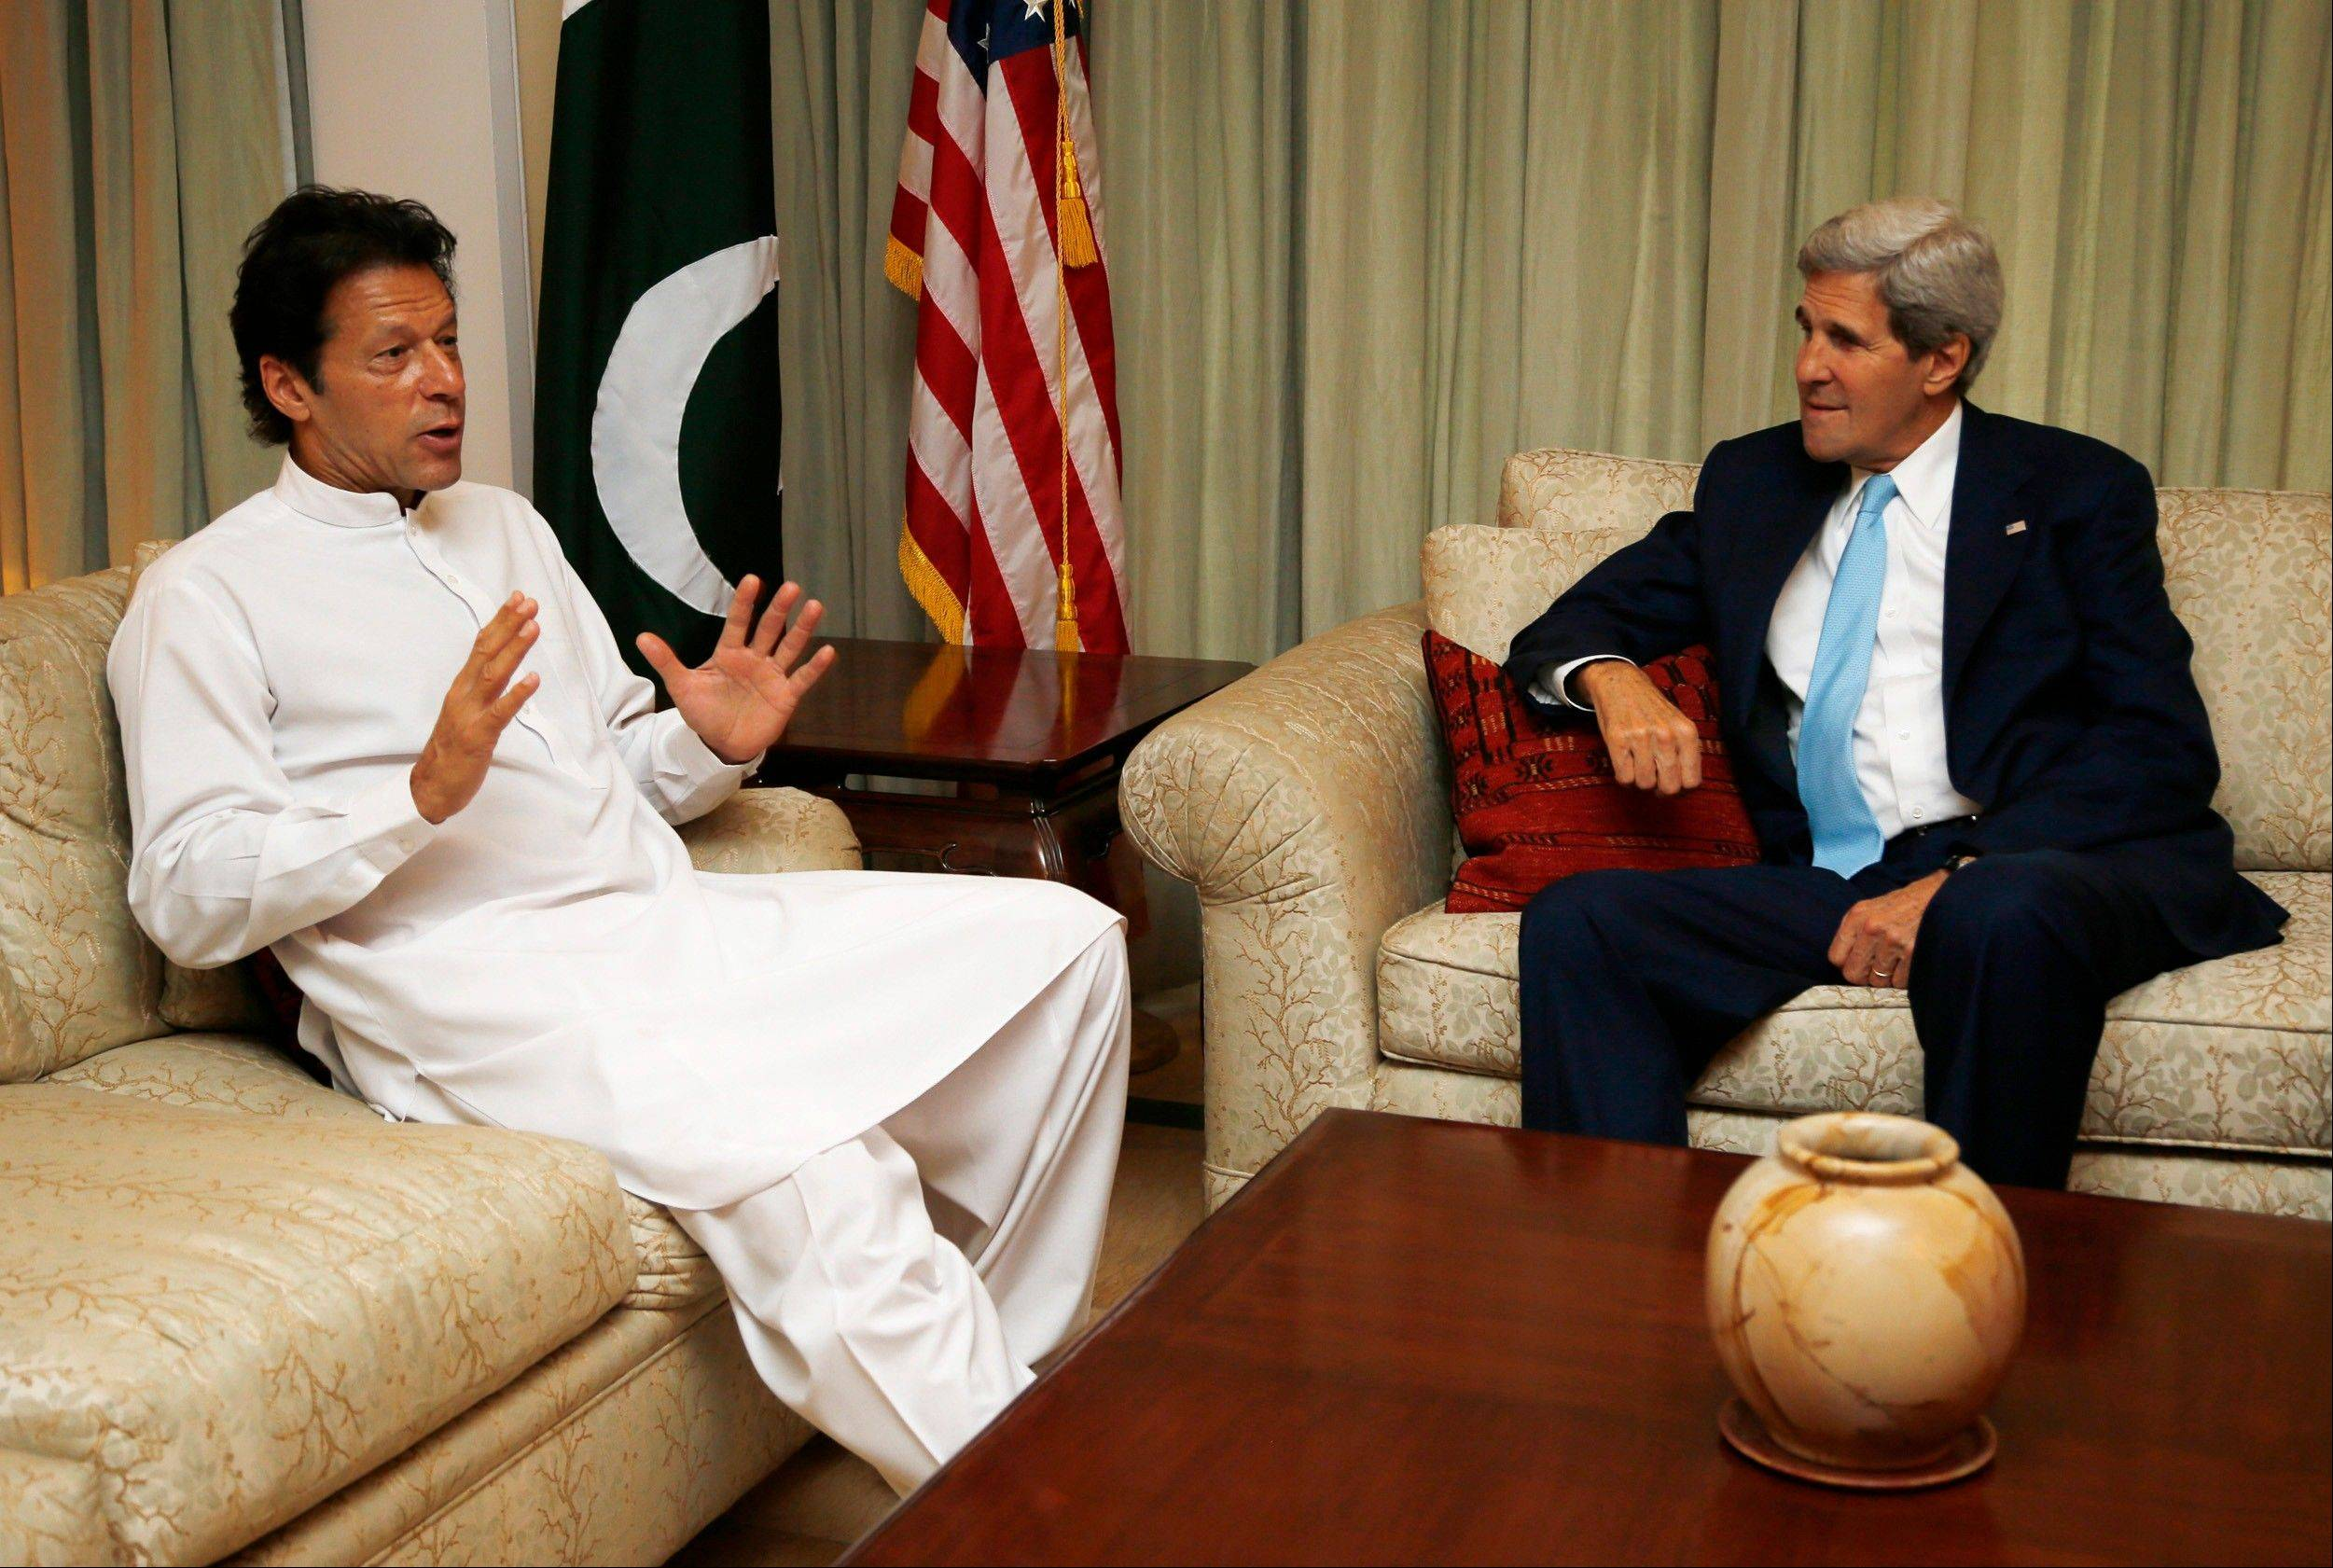 Secretary of State John Kerry meets with Pakistan�s opposition leader Imran Khan in Islamabad, Pakistan, Thursday, Aug. 1, 2013. Kerry said the resumption of security talks will cover �all of the key issues between us, from border management to counterterrorism to promoting U.S. private investment and to Pakistan�s own journey to economic revitalization.�